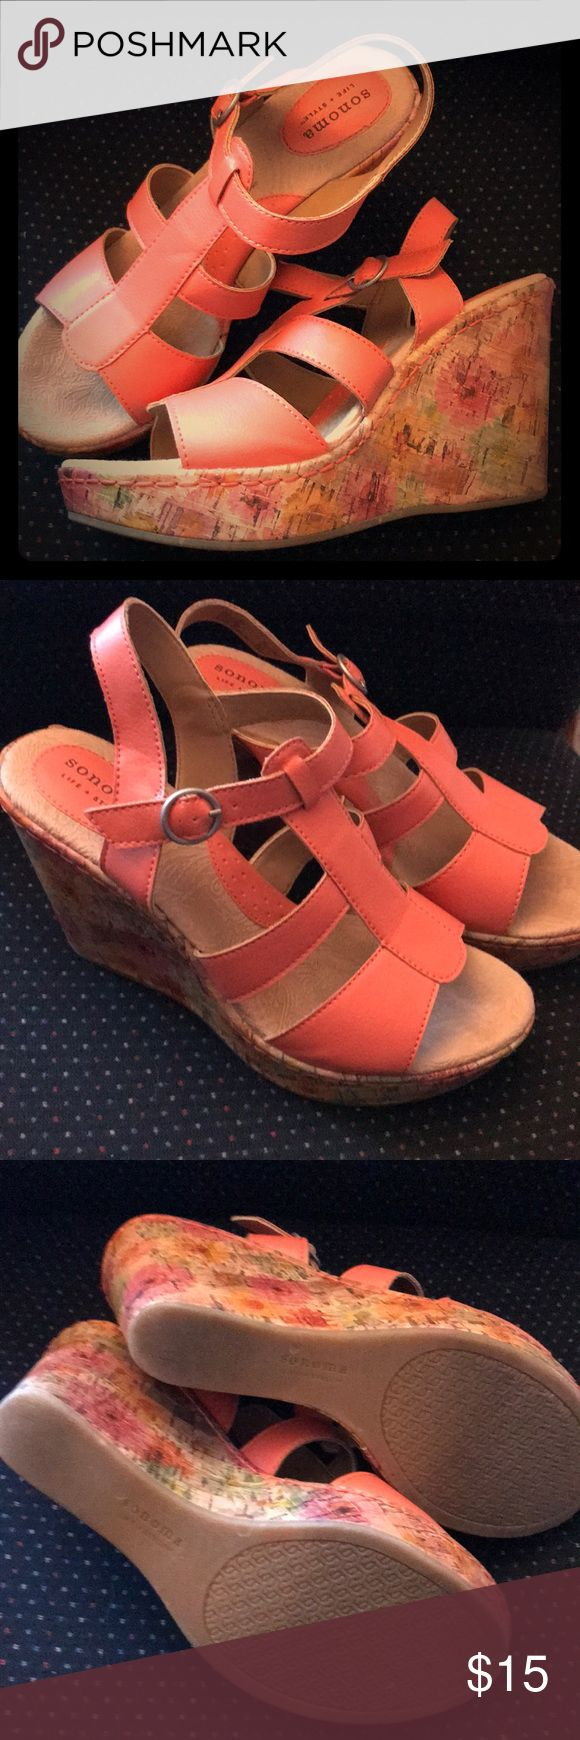 SONOMA CORAL WEDGED In great preowned condition. Sonoma Shoes Wedges